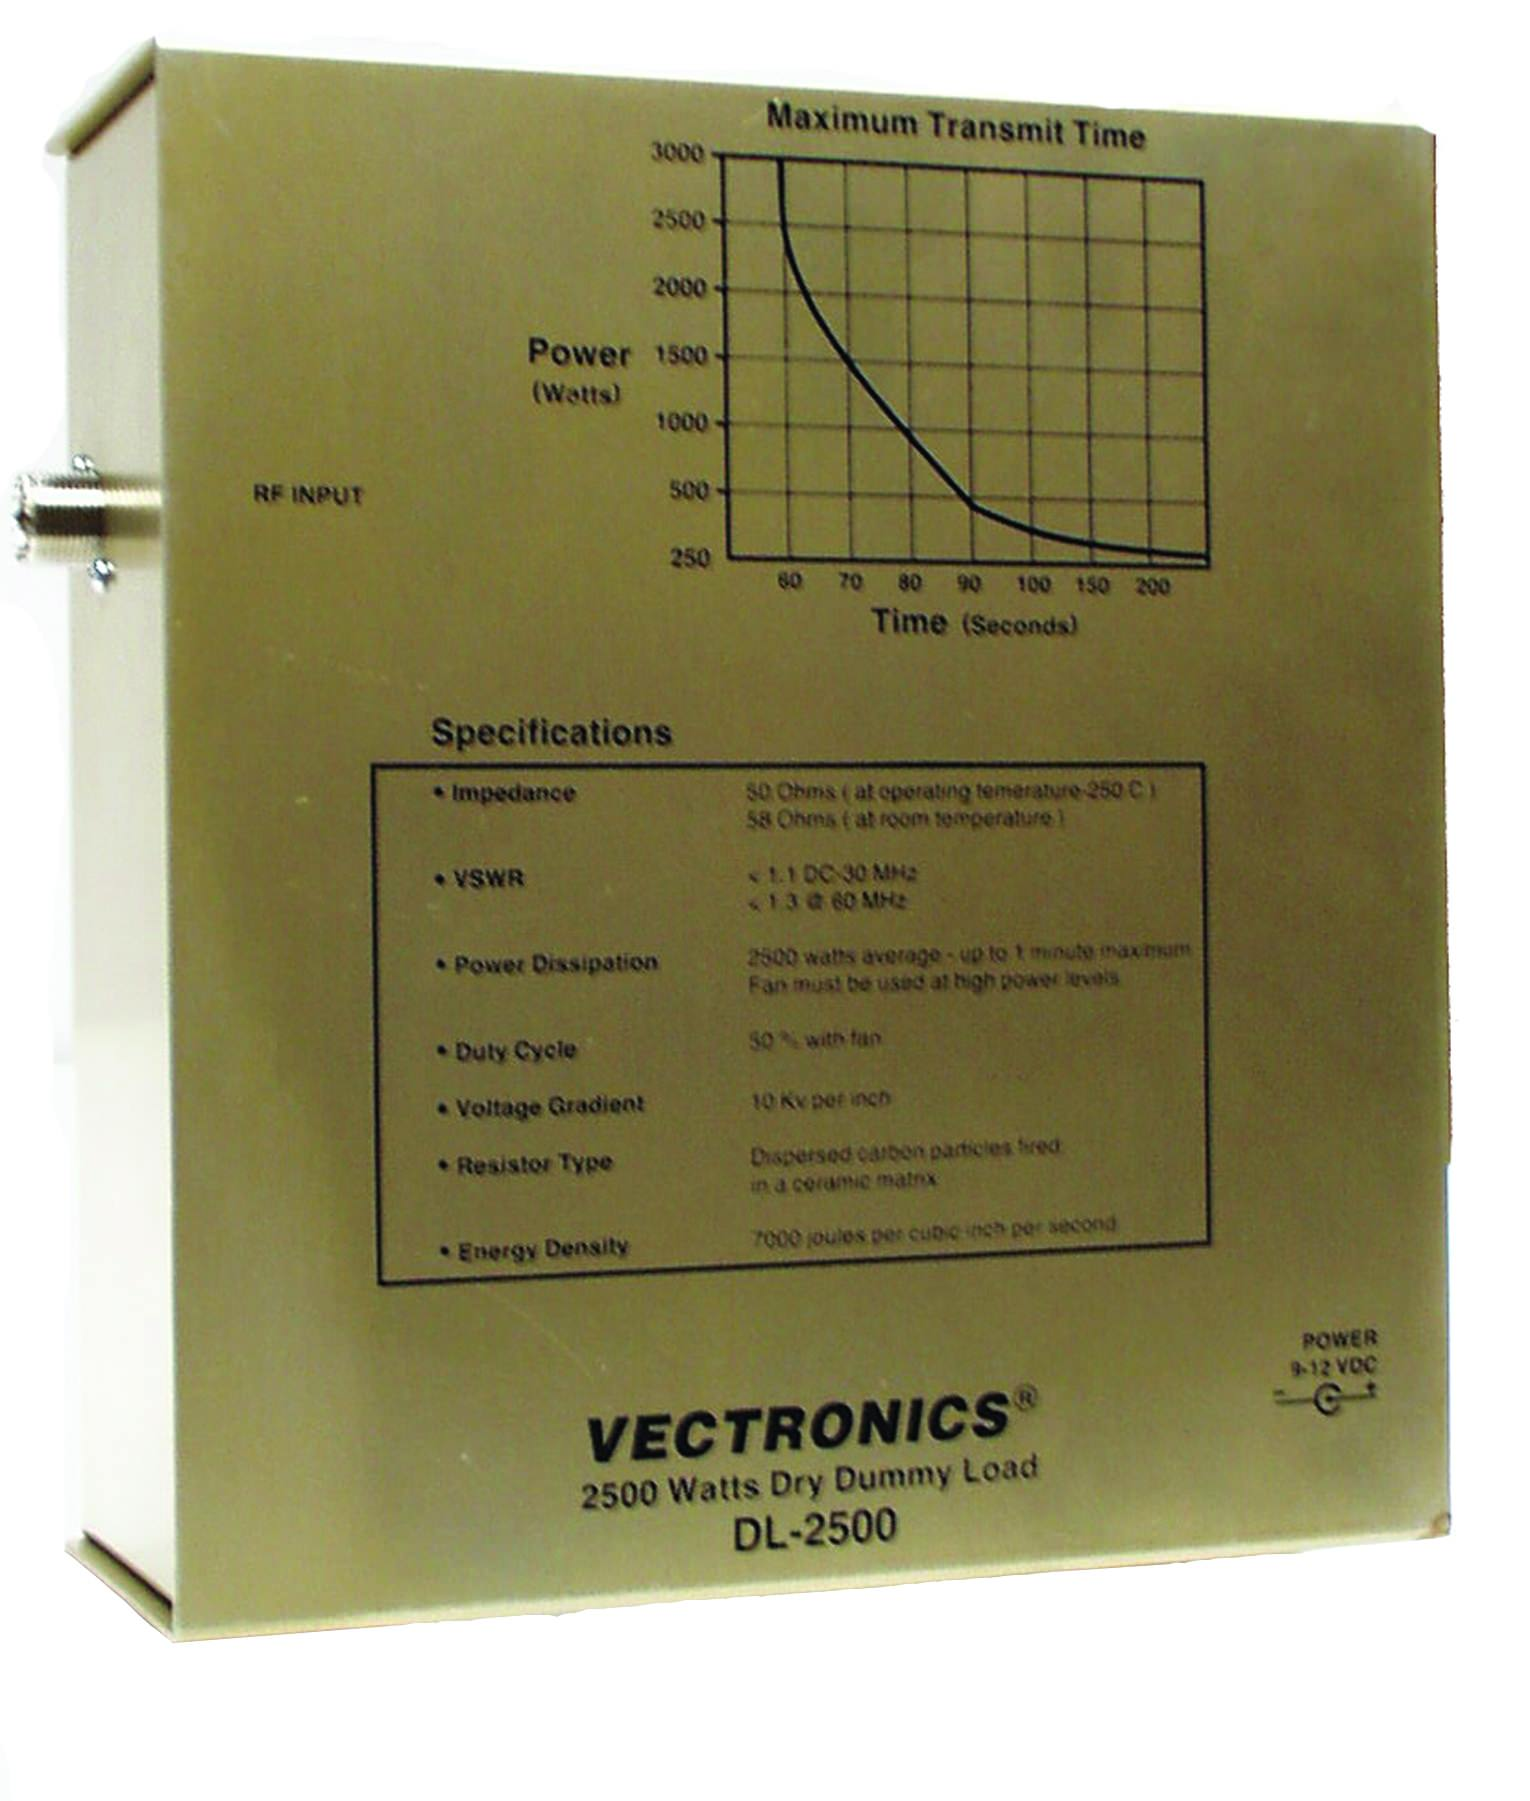 DL-2500 Vectronics 2.5kW Dummy Load (SO-239)